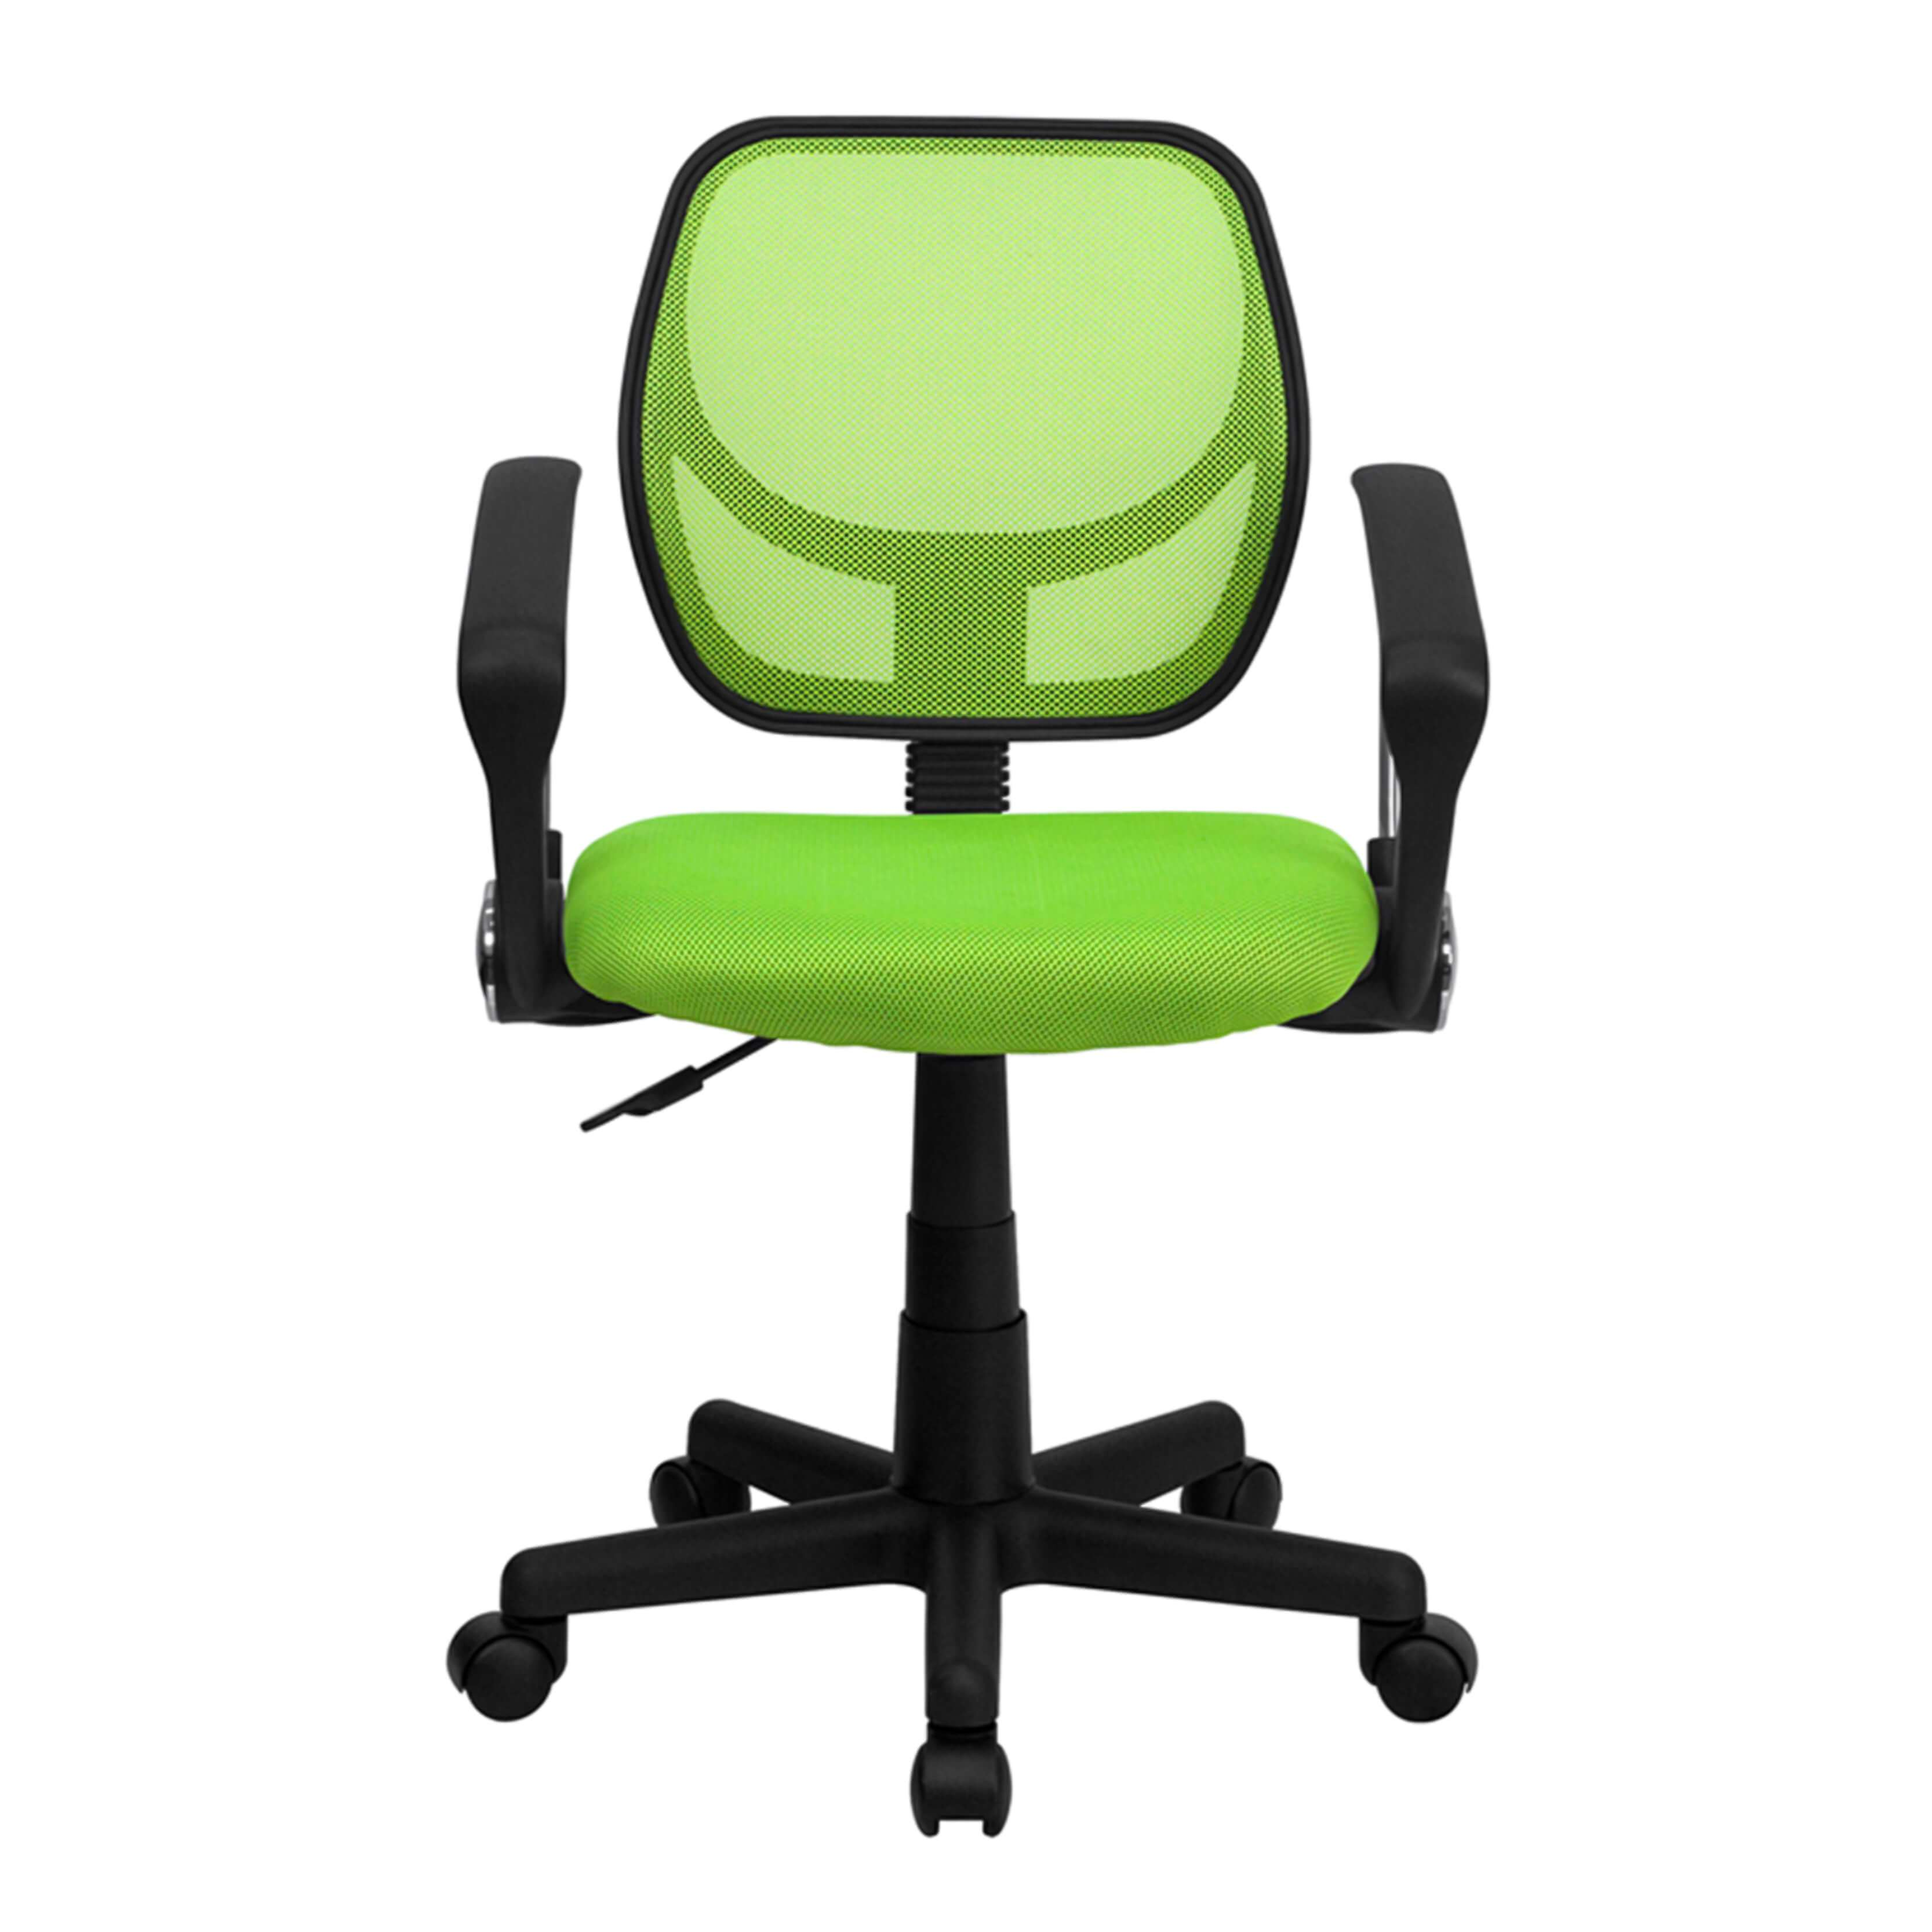 Colorful desk chairs CUB WA 3074 GN A GG FLA